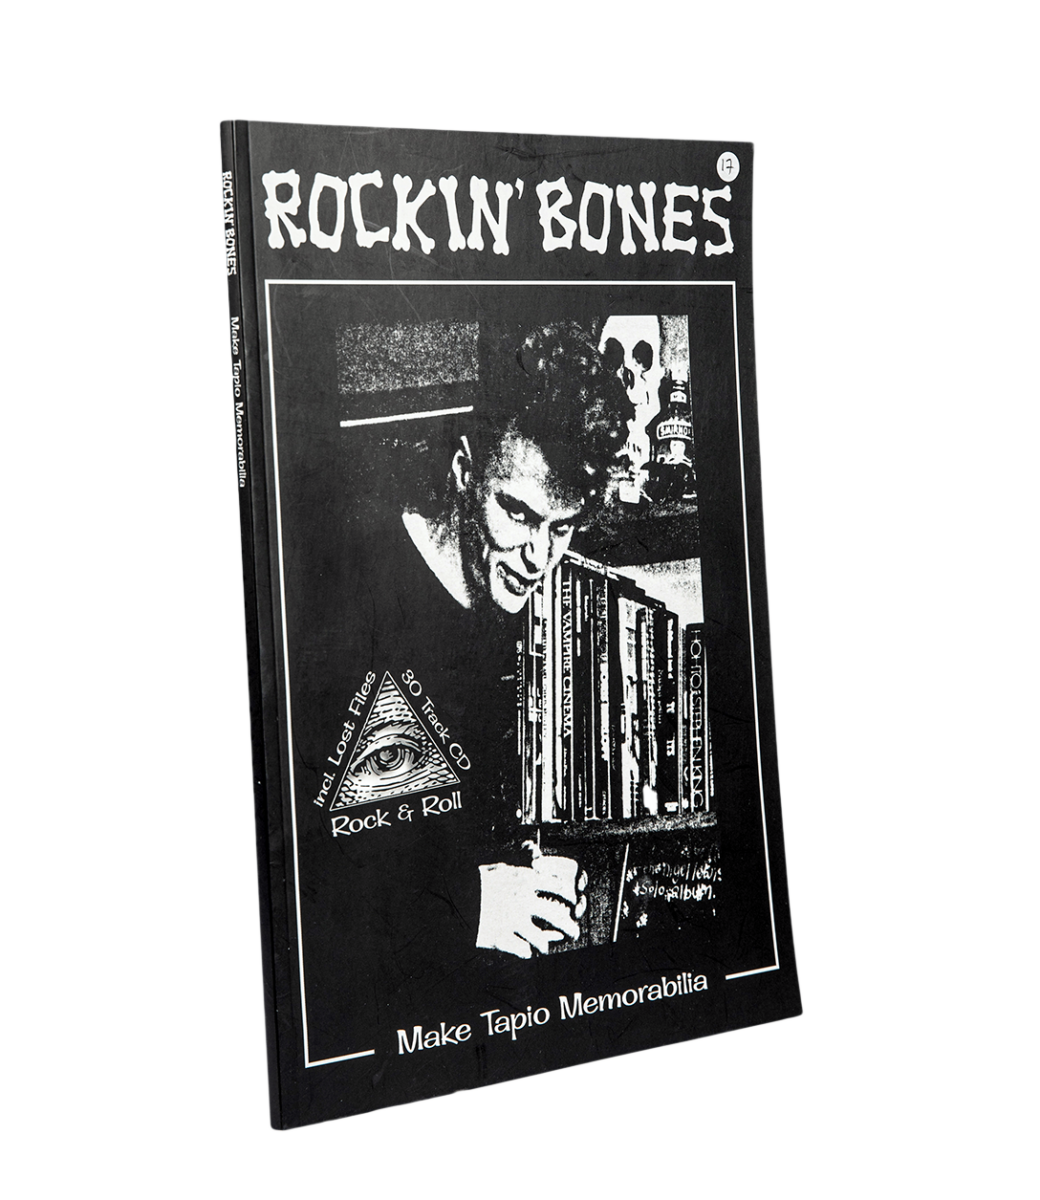 Mikko Aaltonen, Mikko Ranta: Rockin' Bones – Make Tapio Memorabilia. 106 s. + cd-levy. Jungle Records, 2019.